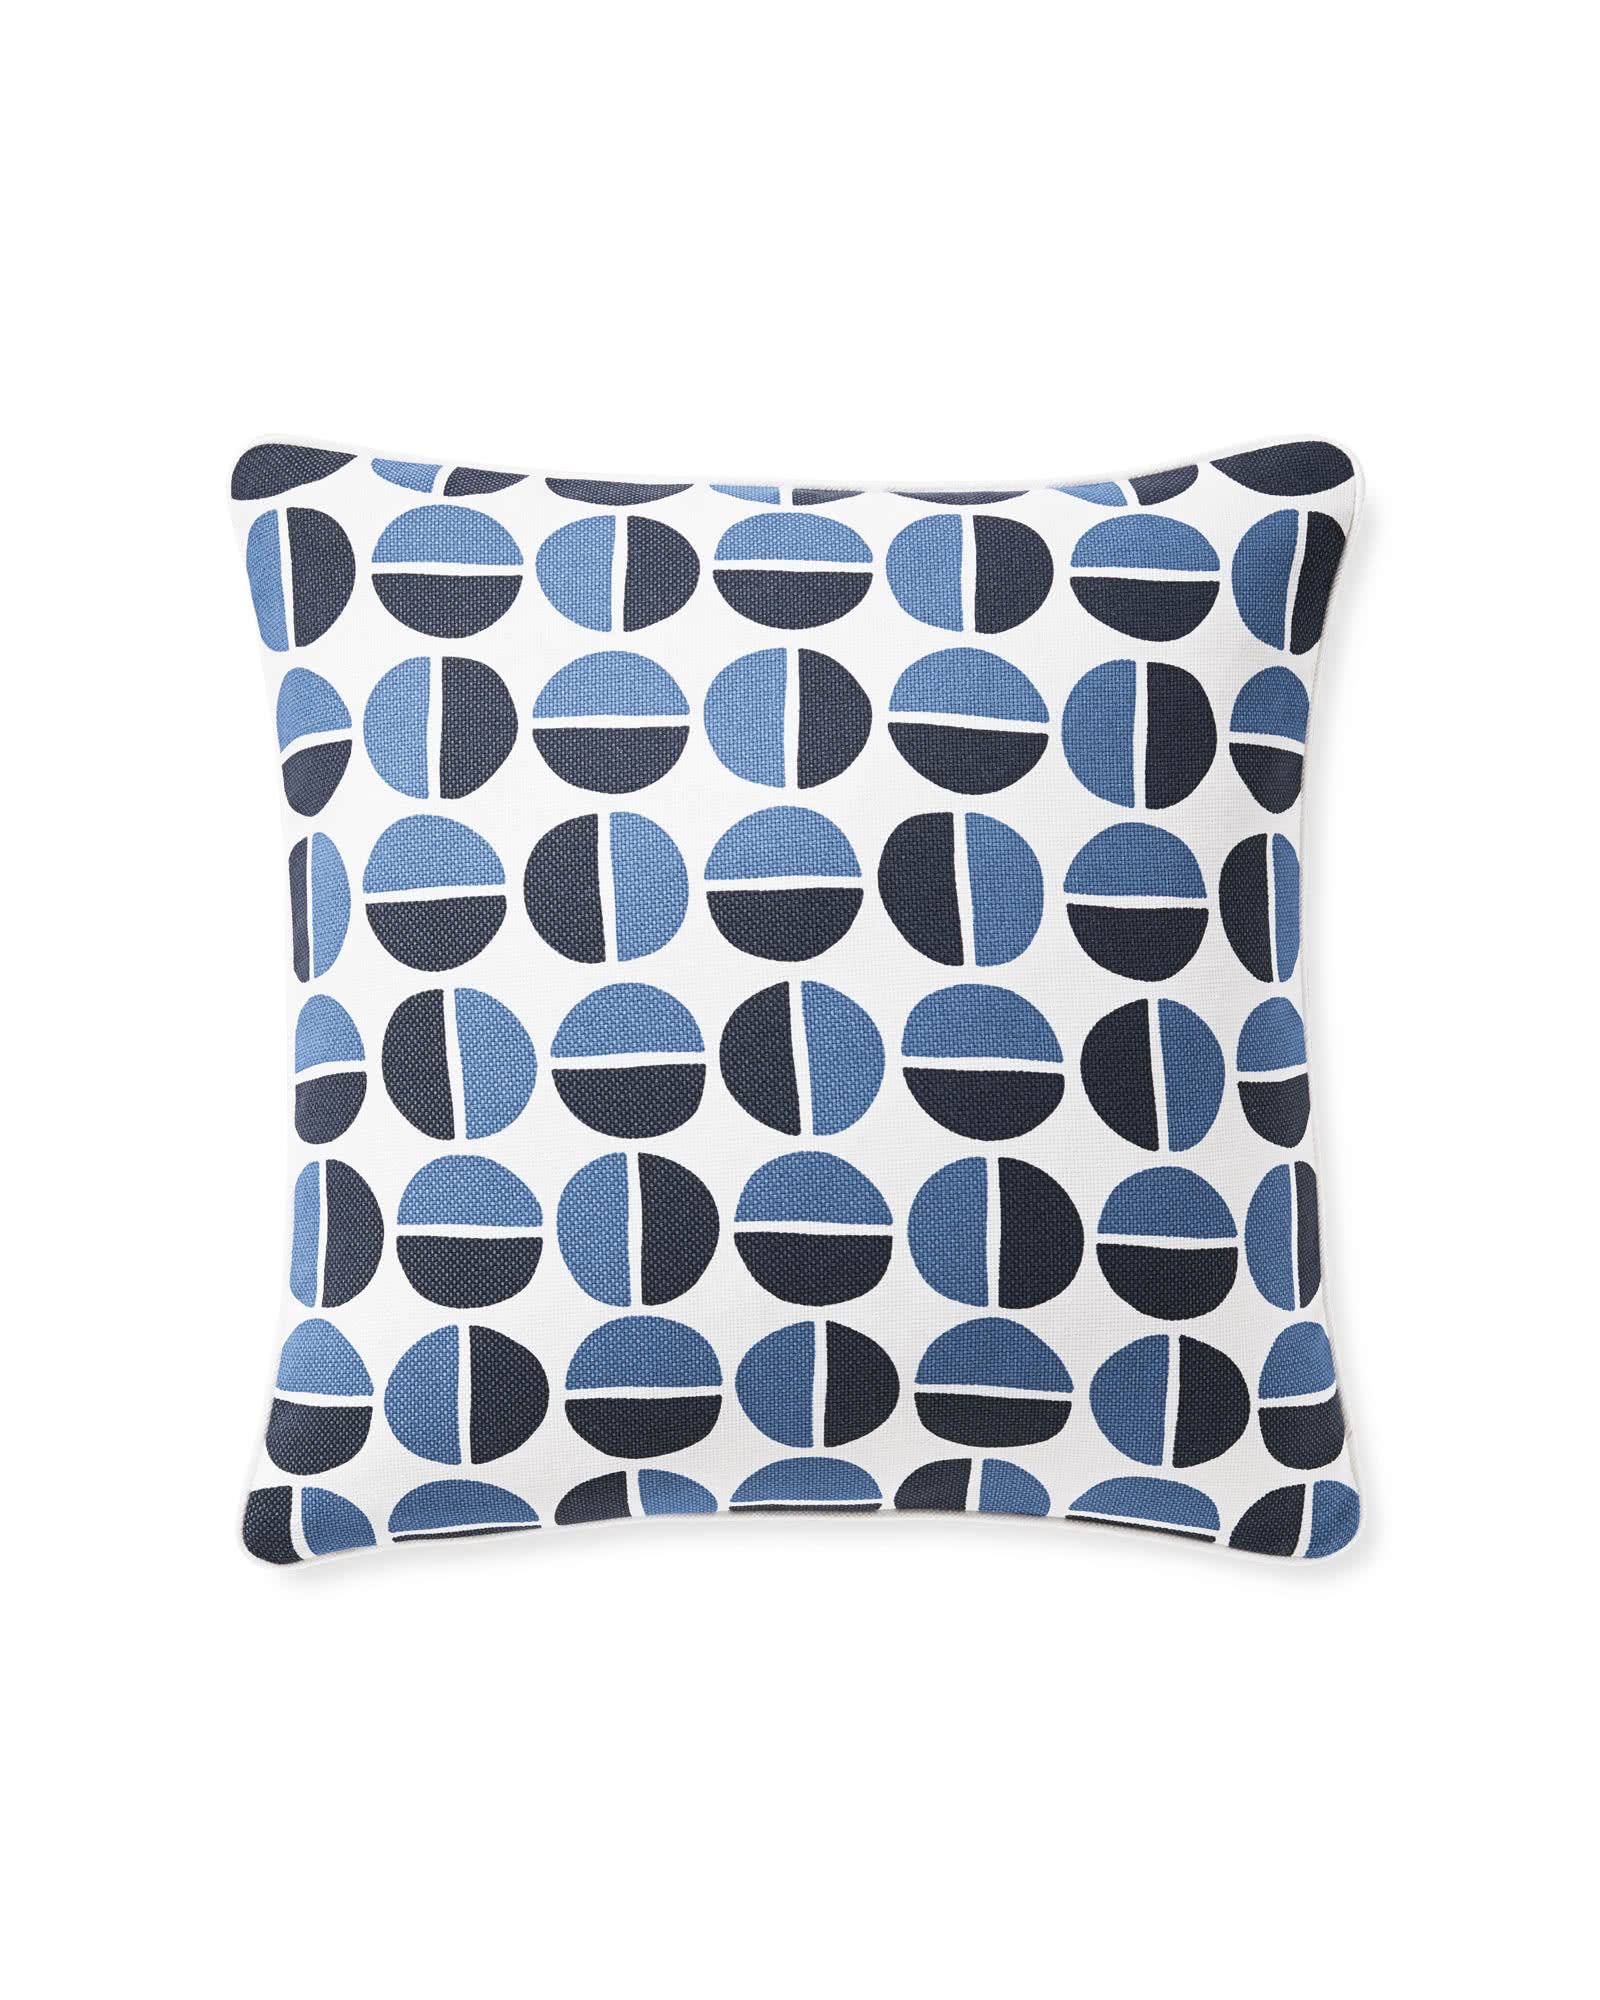 Salisbury Outdoor Pillow Cover,